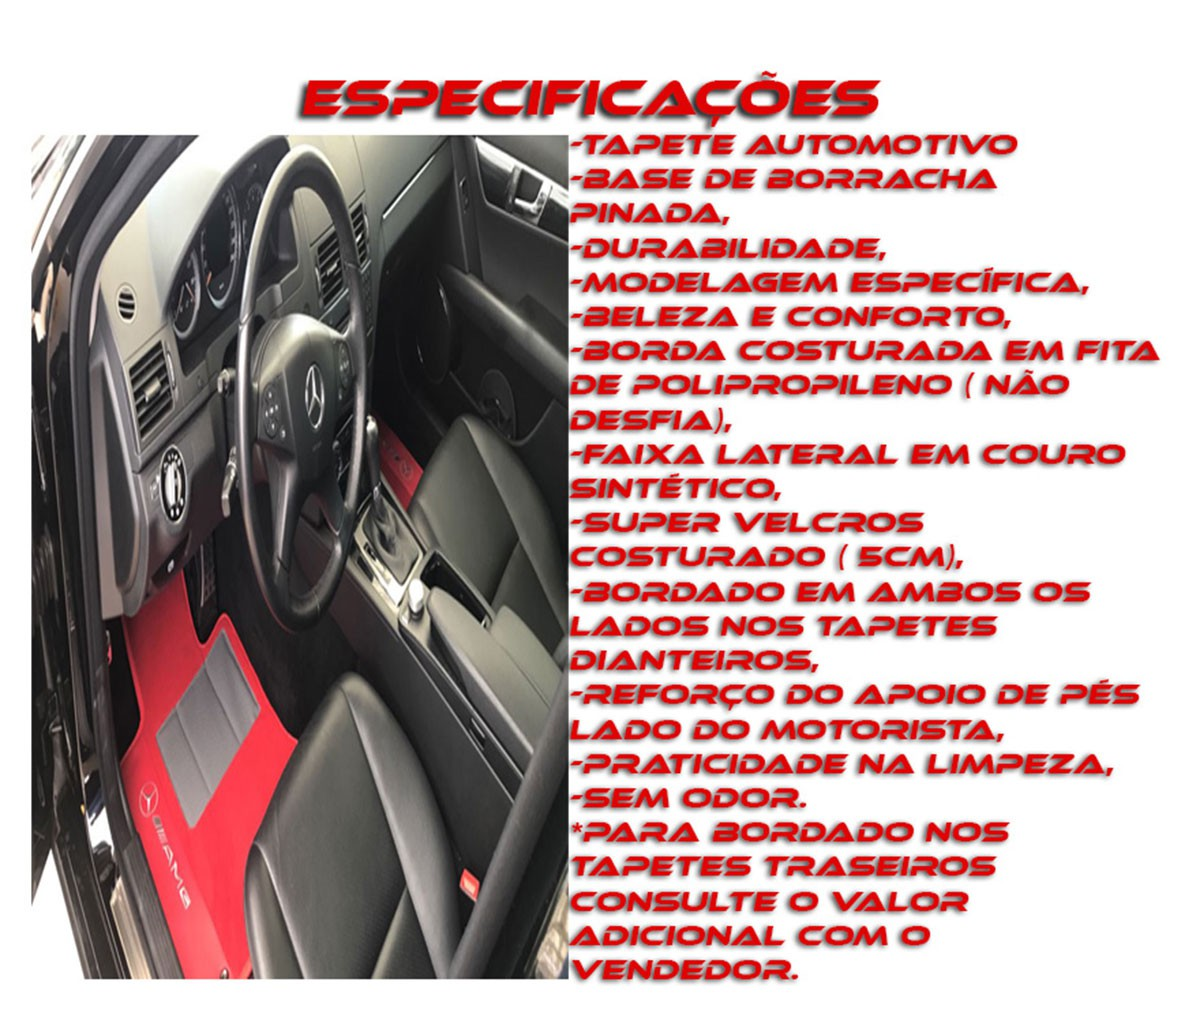 Tapete Camaro Ss Carpete Luxo  Base Borracha Pinada